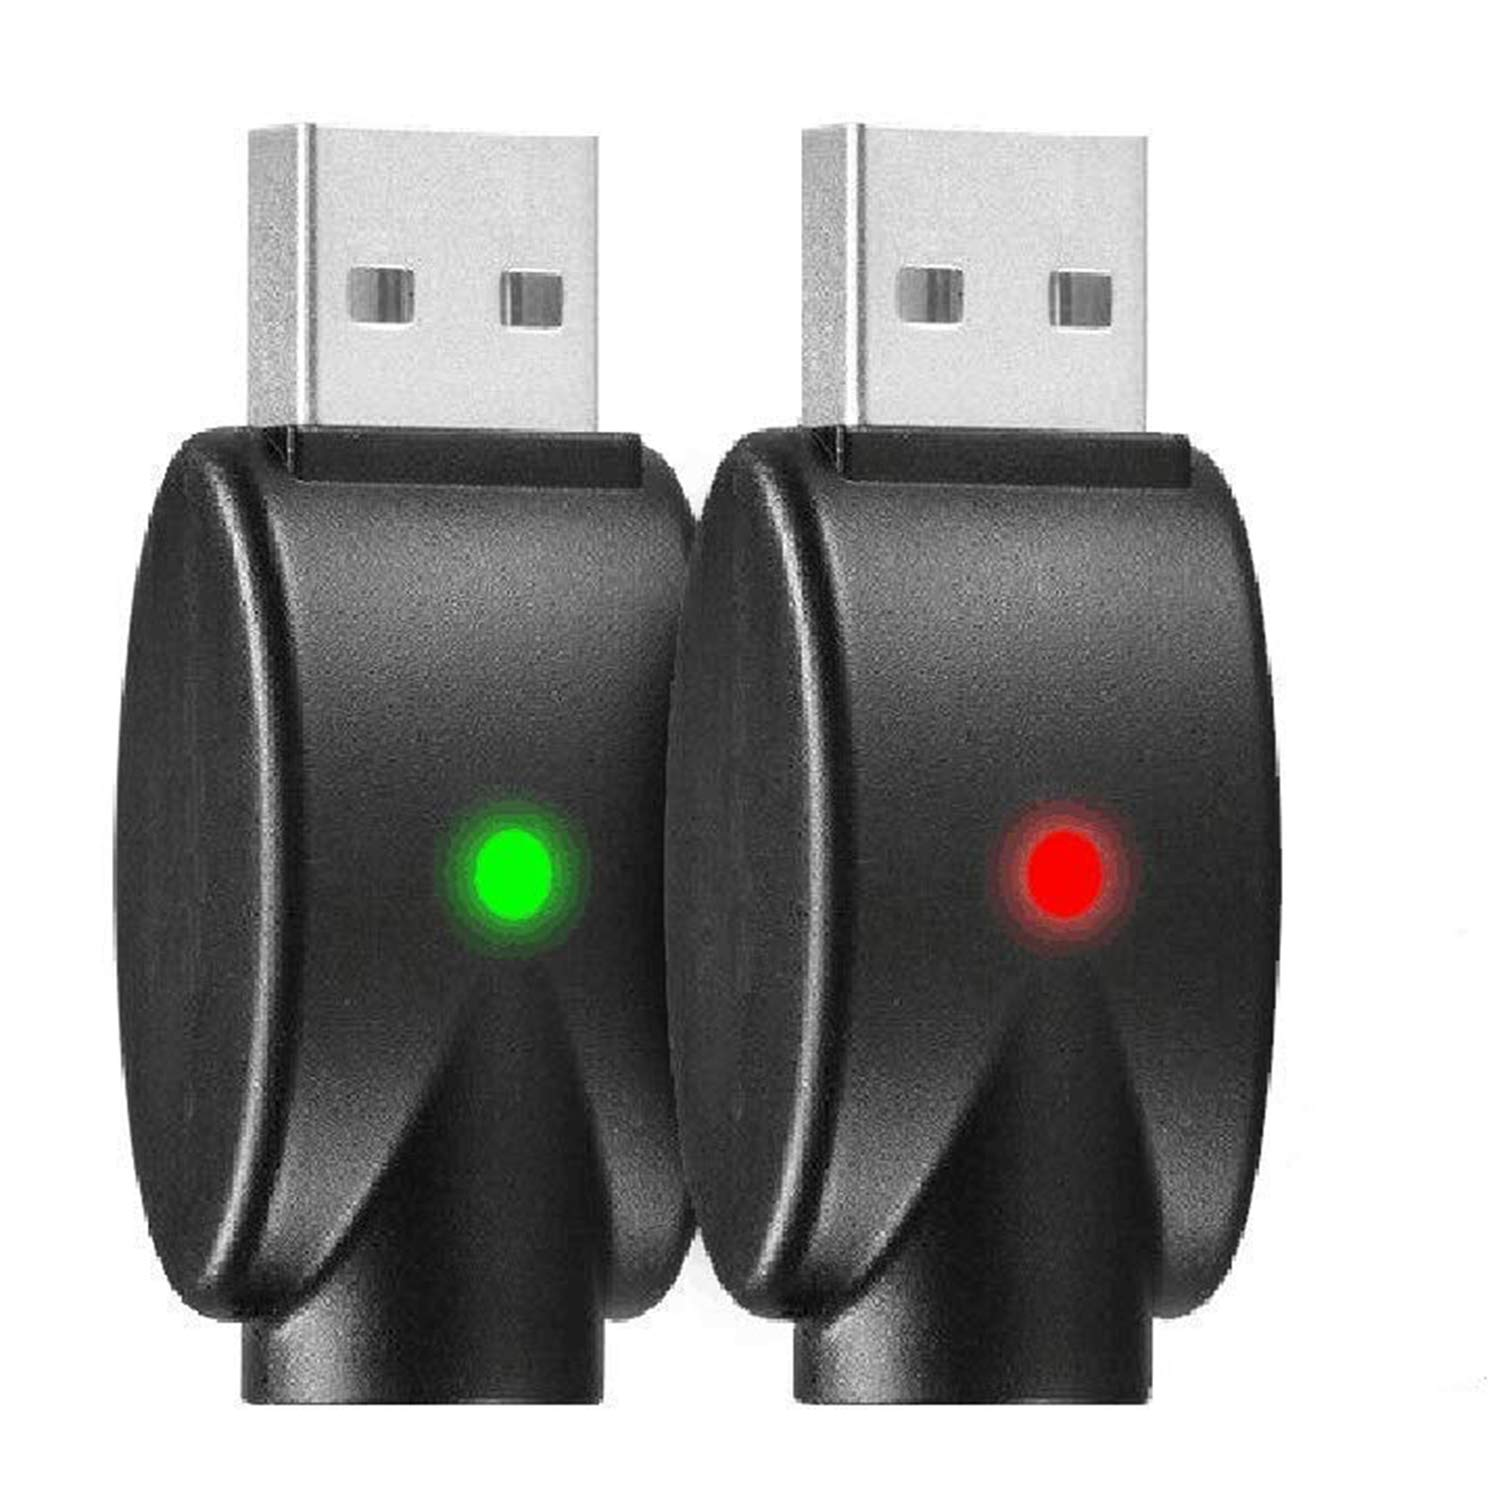 510 Charging Intelligent Overcharge Protection Compatible